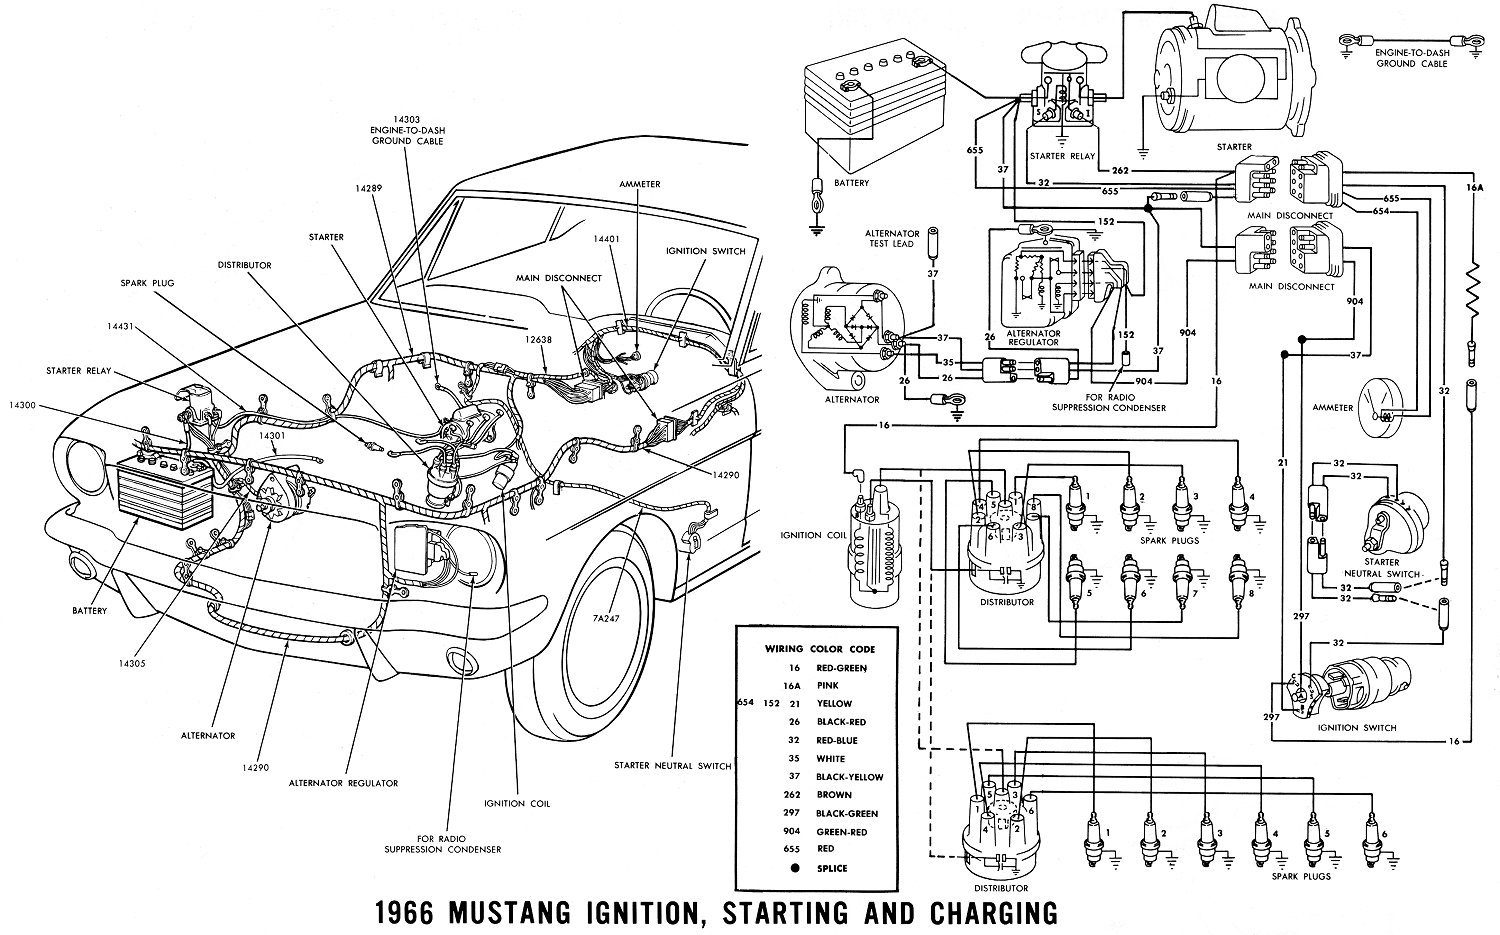 electric choke wiring question ford mustang forum click image for larger version 66 mustang wiring jpg views 12905 size